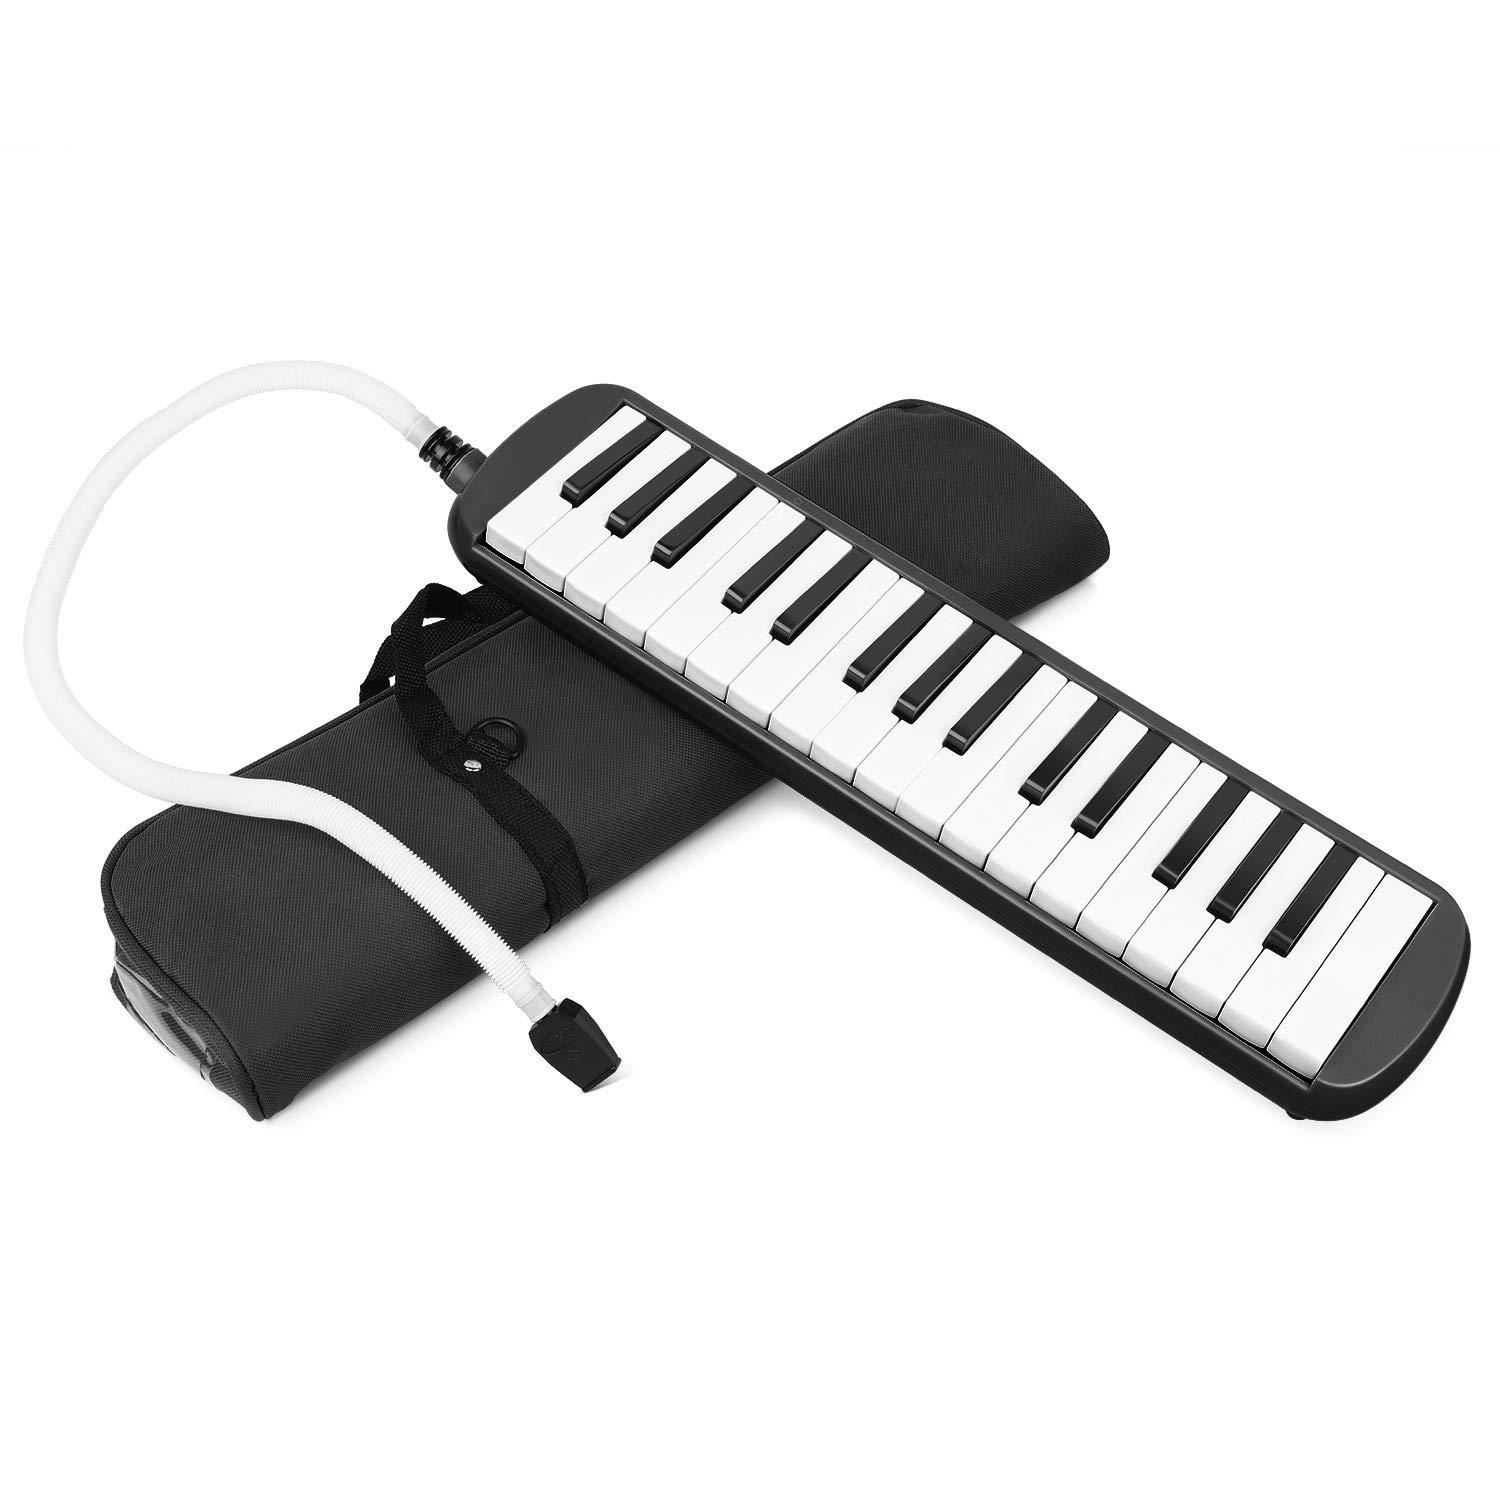 Flexzion Melodica 32 Piano Keys - Melodica Keyboard with Mouthpiece Tube, Portable Musical Instrument Pianica Melodicas Piano Style with Carrying Bag (32 Key) (Black)